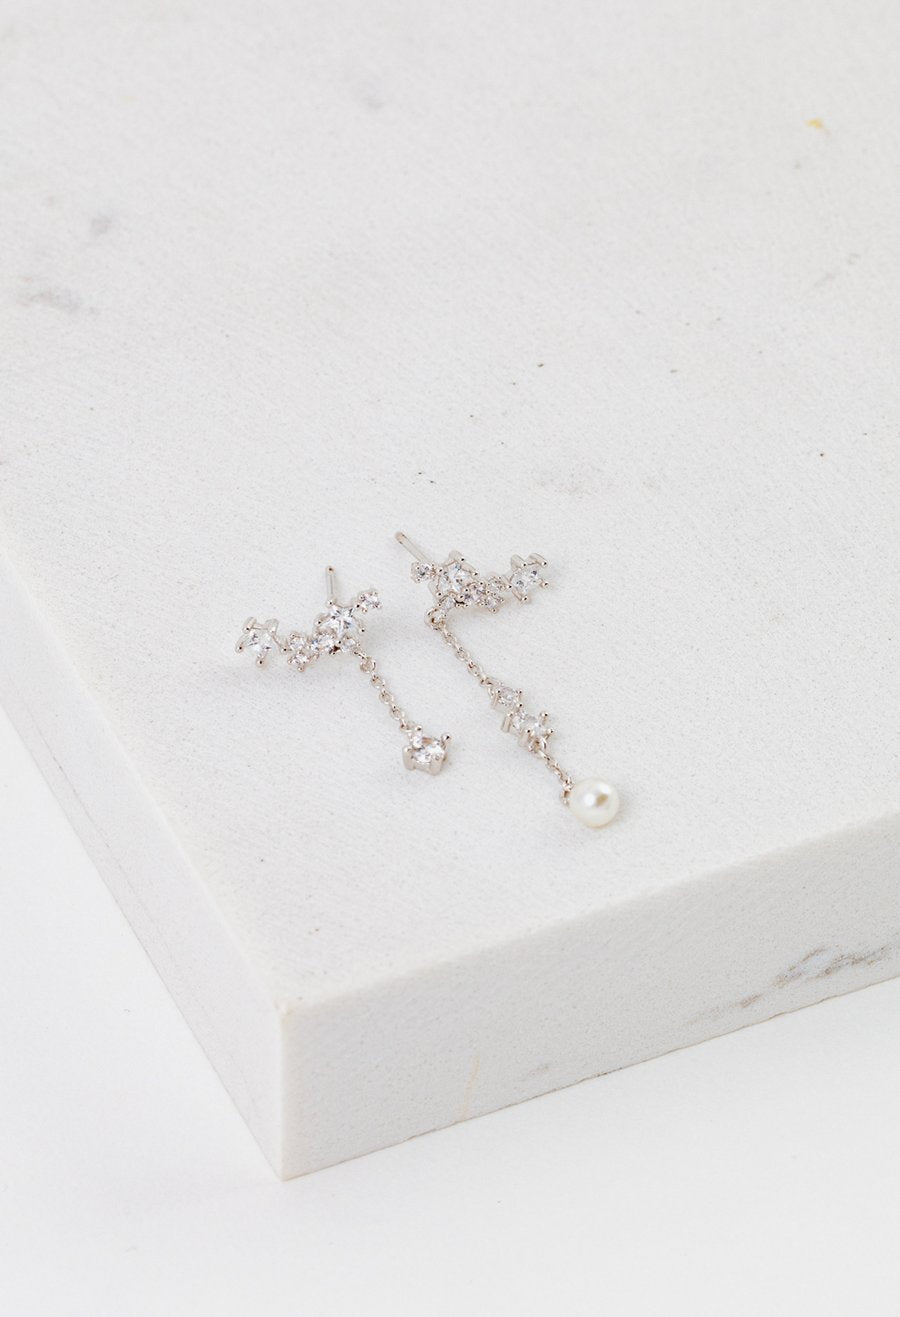 LOVER'S TEMPO - GALAXY CLIMBER EARRINGS IN SILVER